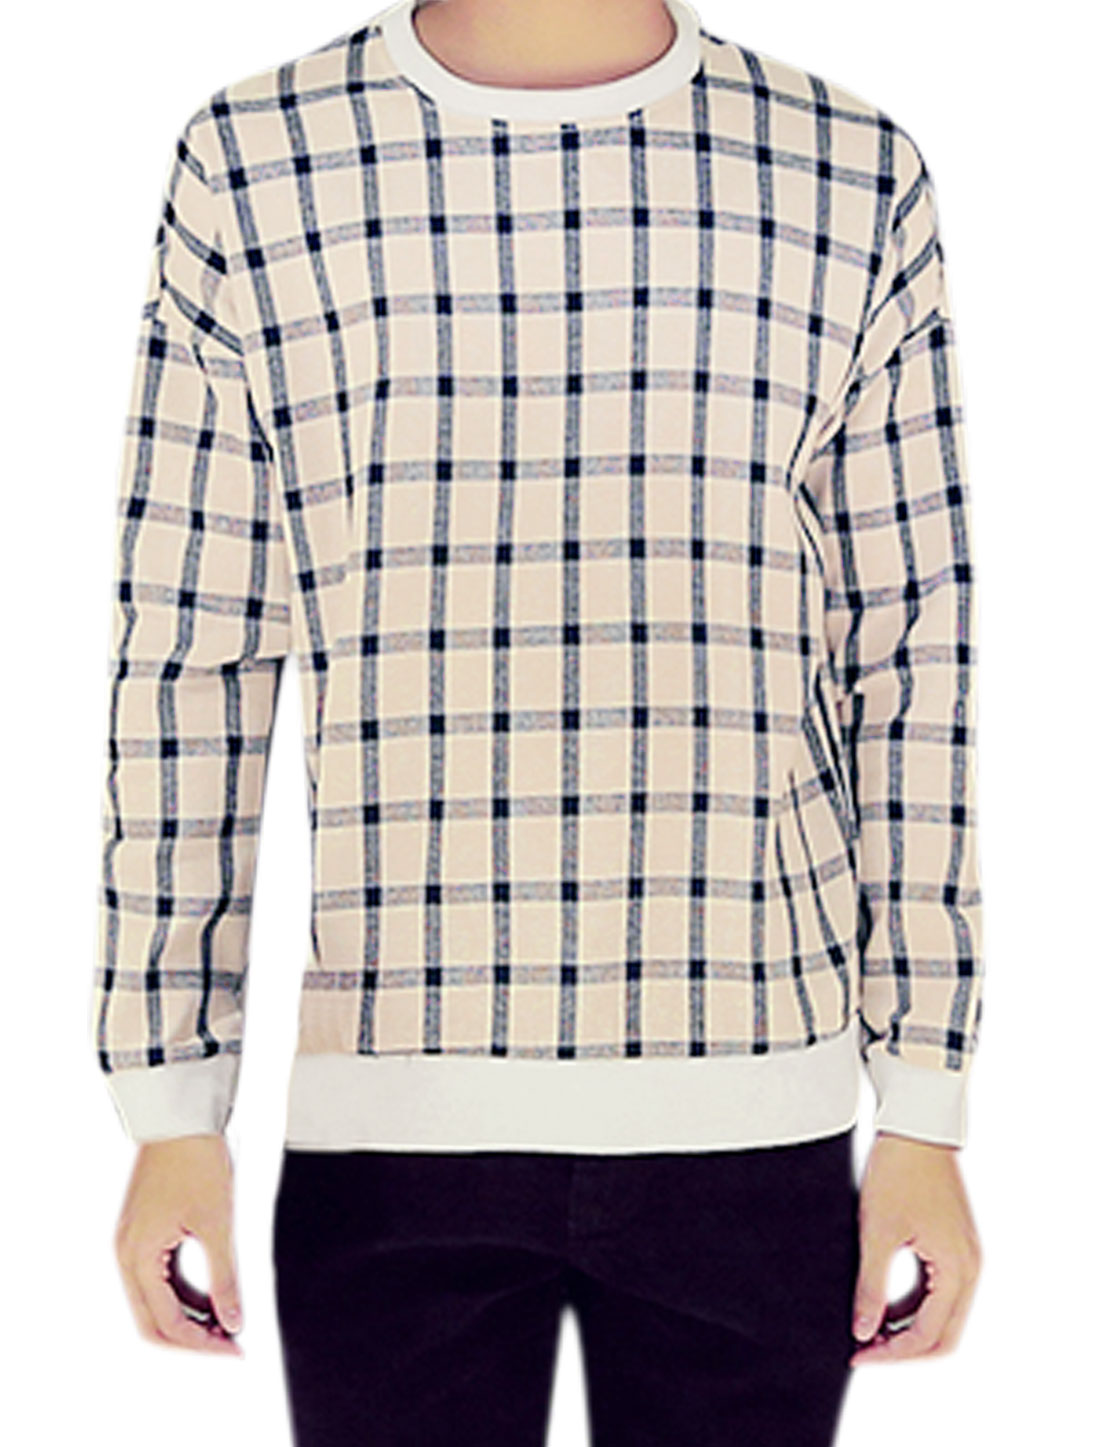 Men Crew Neck Long Sleeves Checks Print Ribbed Trim Casual T-Shirt Blue Beige M